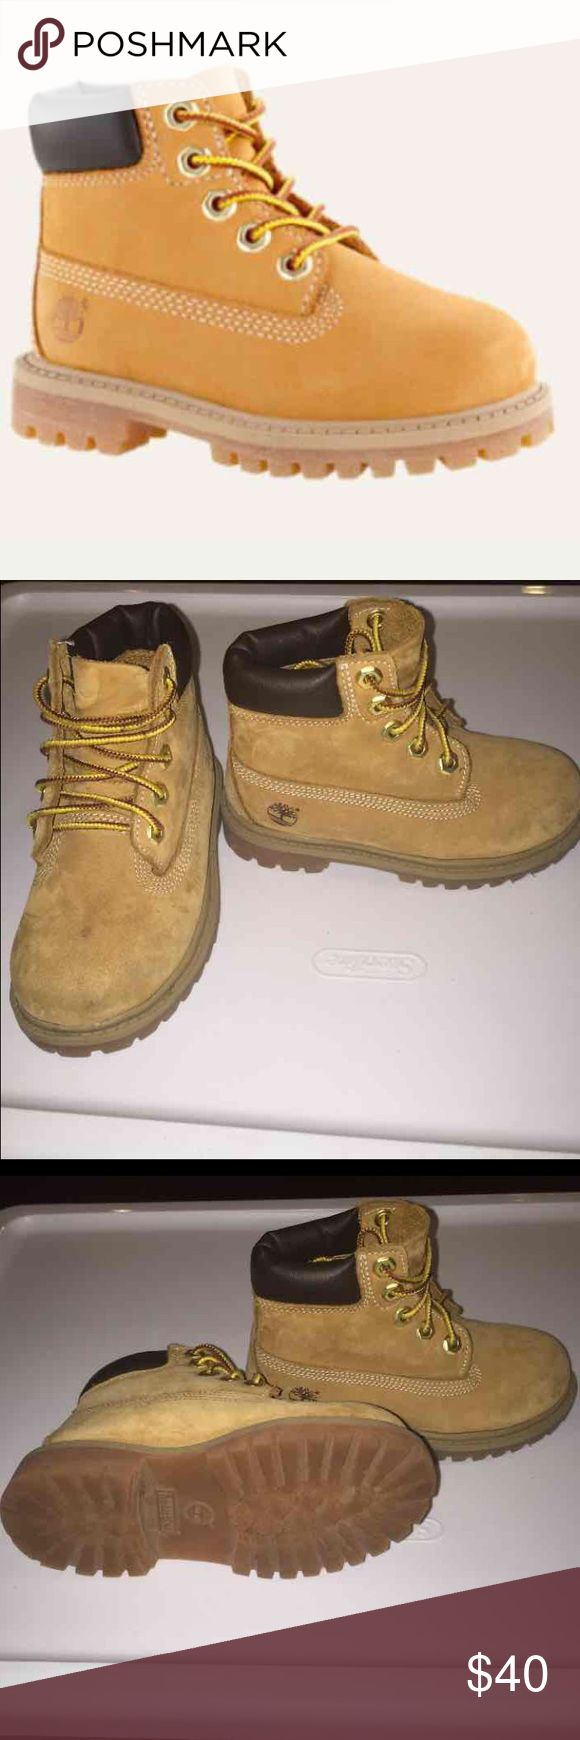 Toddler Timberland boots Boys timberland boots. In wonderful condition. Have been worn a handful of times. Some scuffing. Timberland Shoes Boots